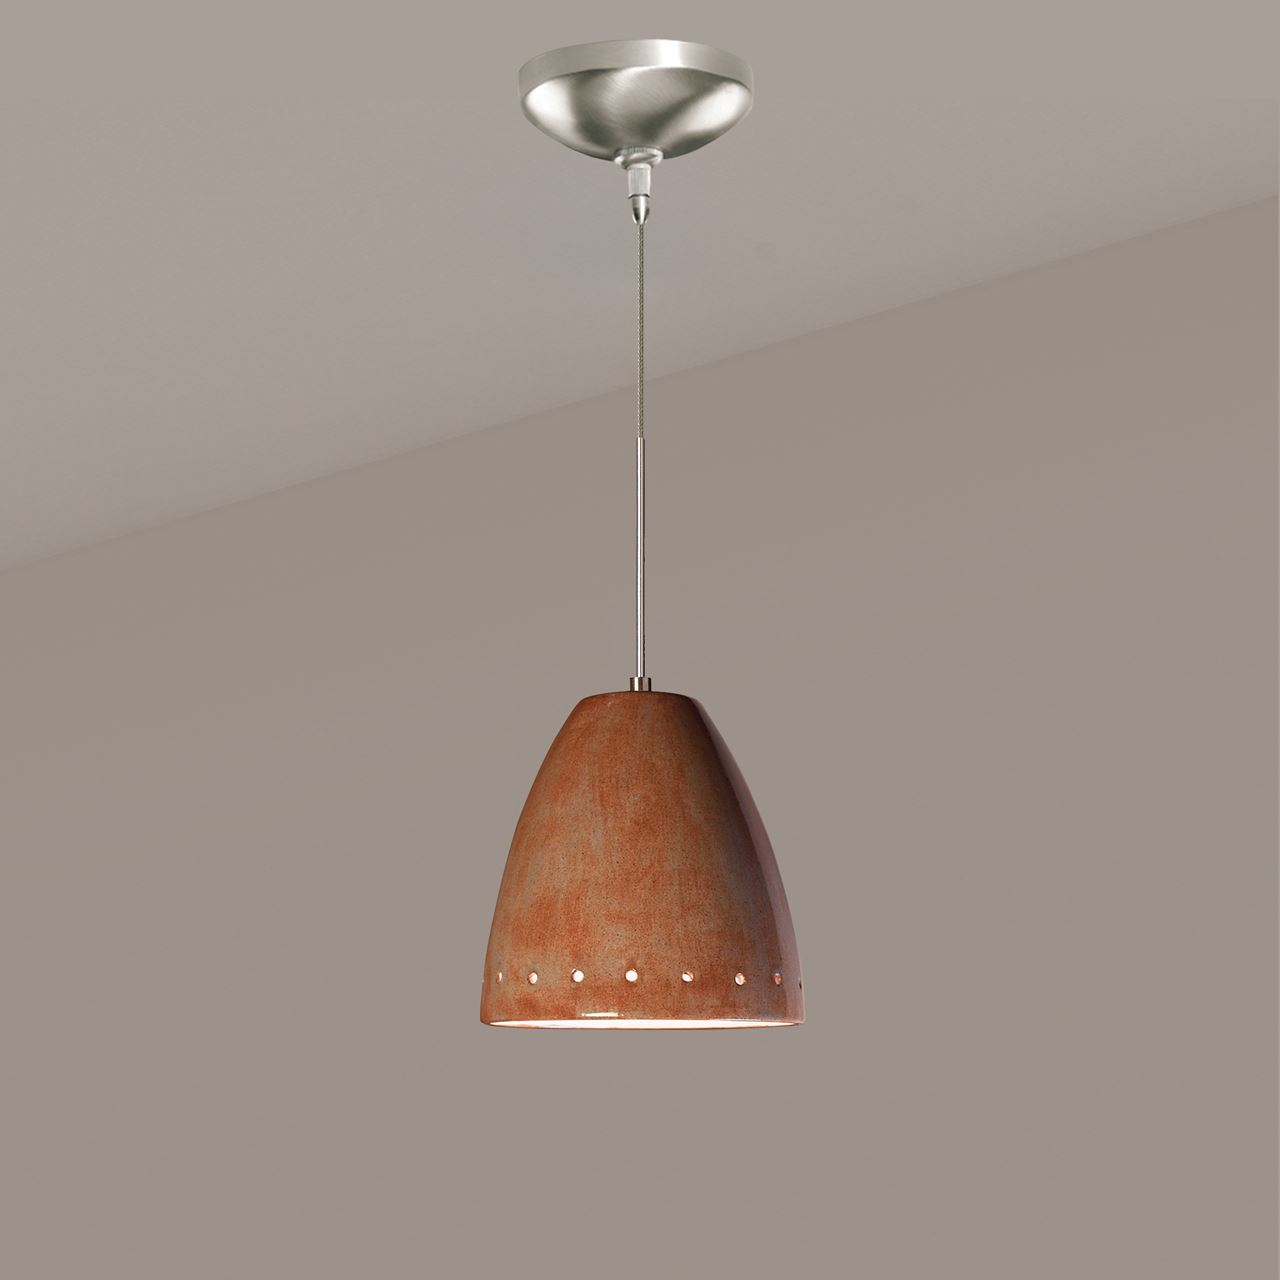 Picture of A19 Ceramic Pendant Light | Realm